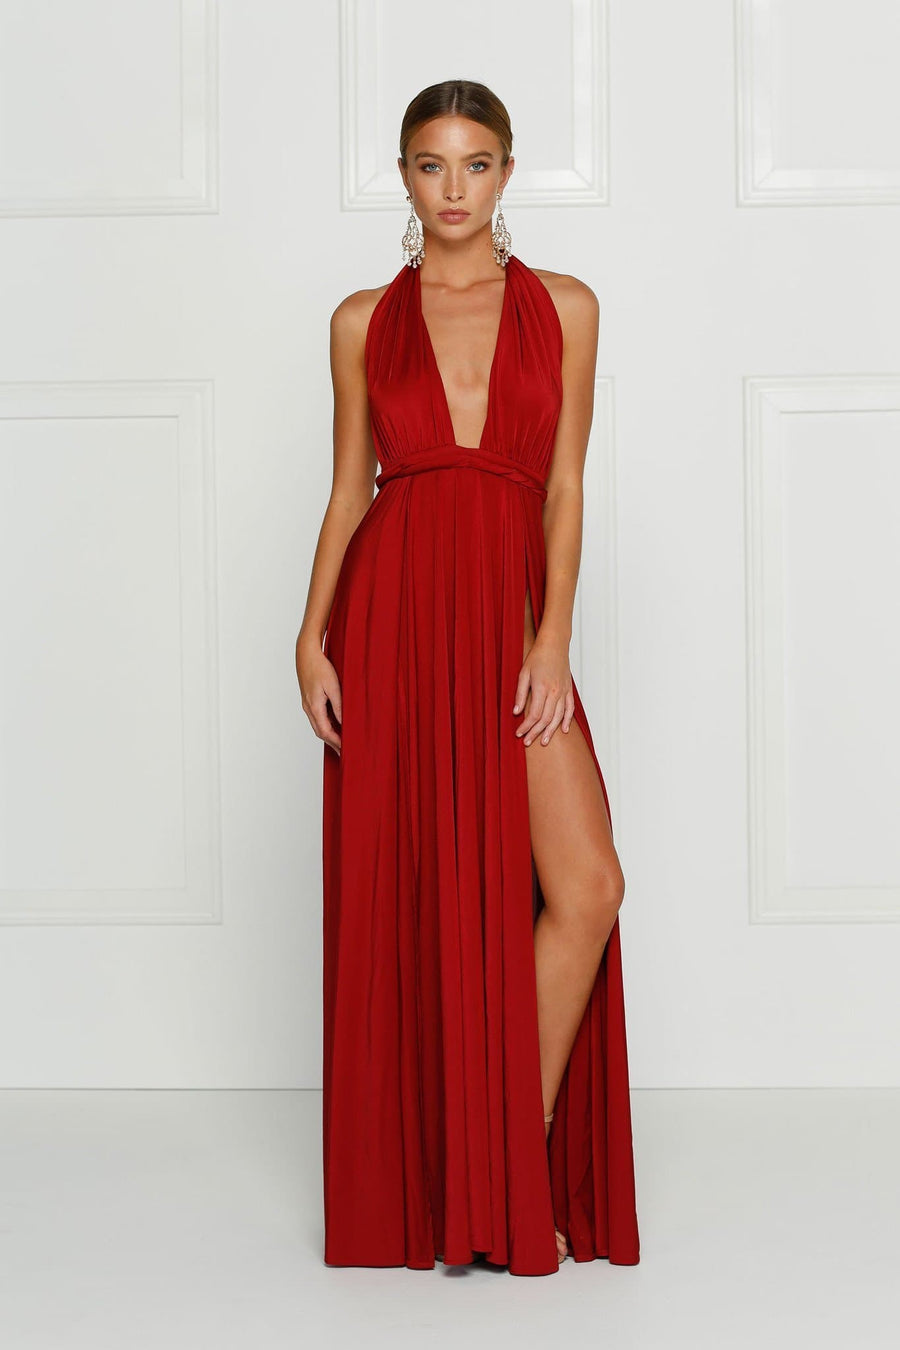 Catalina red multi way maxi dress for bridesmaid, formal or prom available online